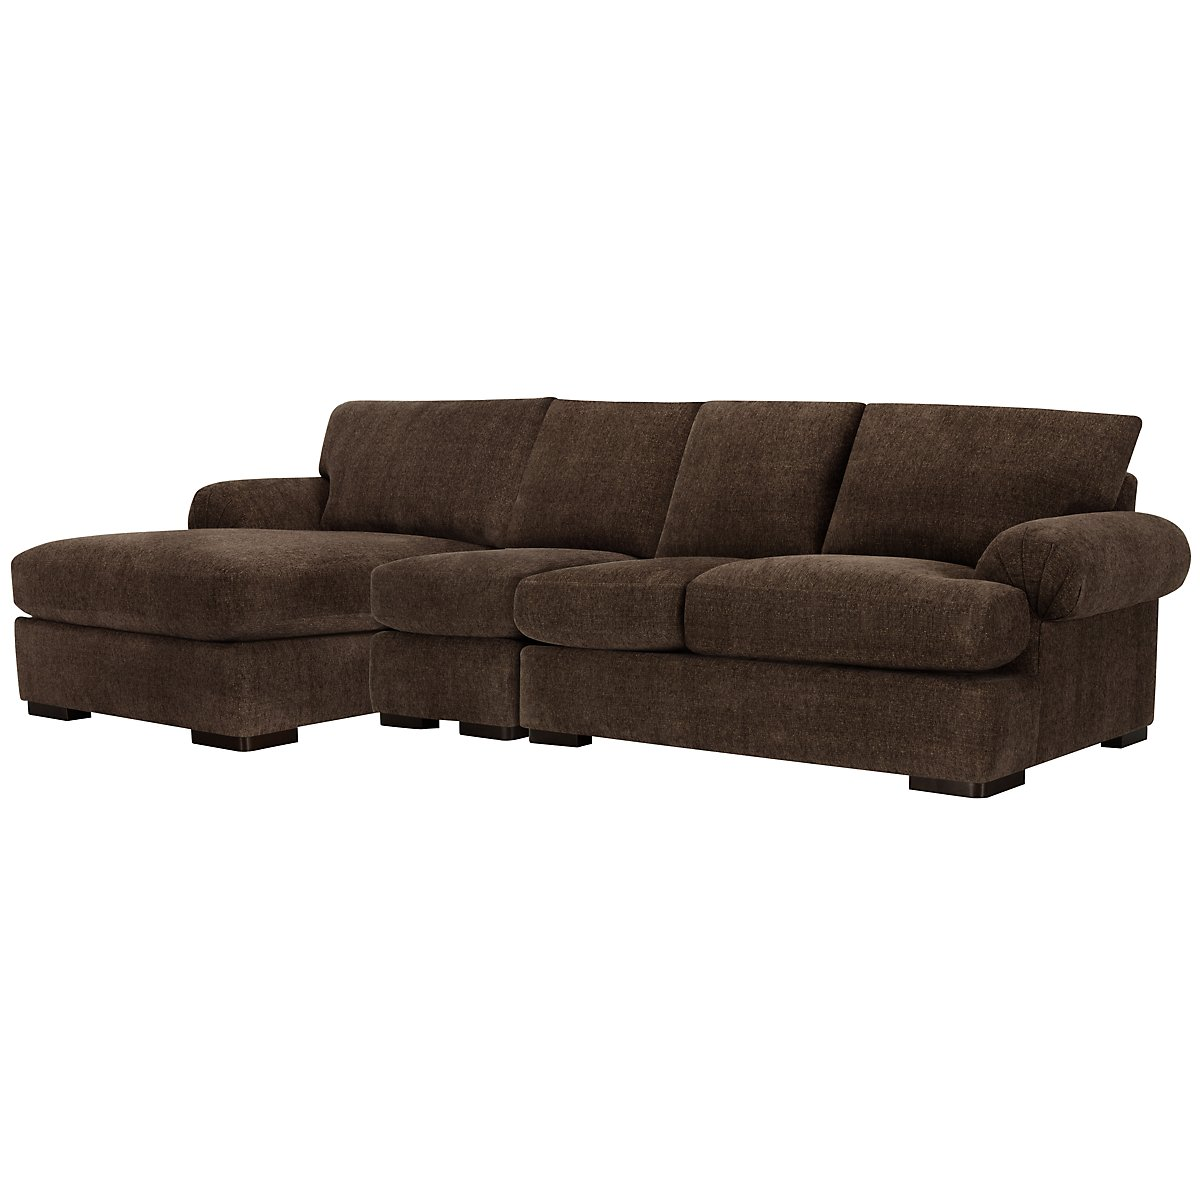 City furniture belair dk brown microfiber small left for Brown sectional with chaise